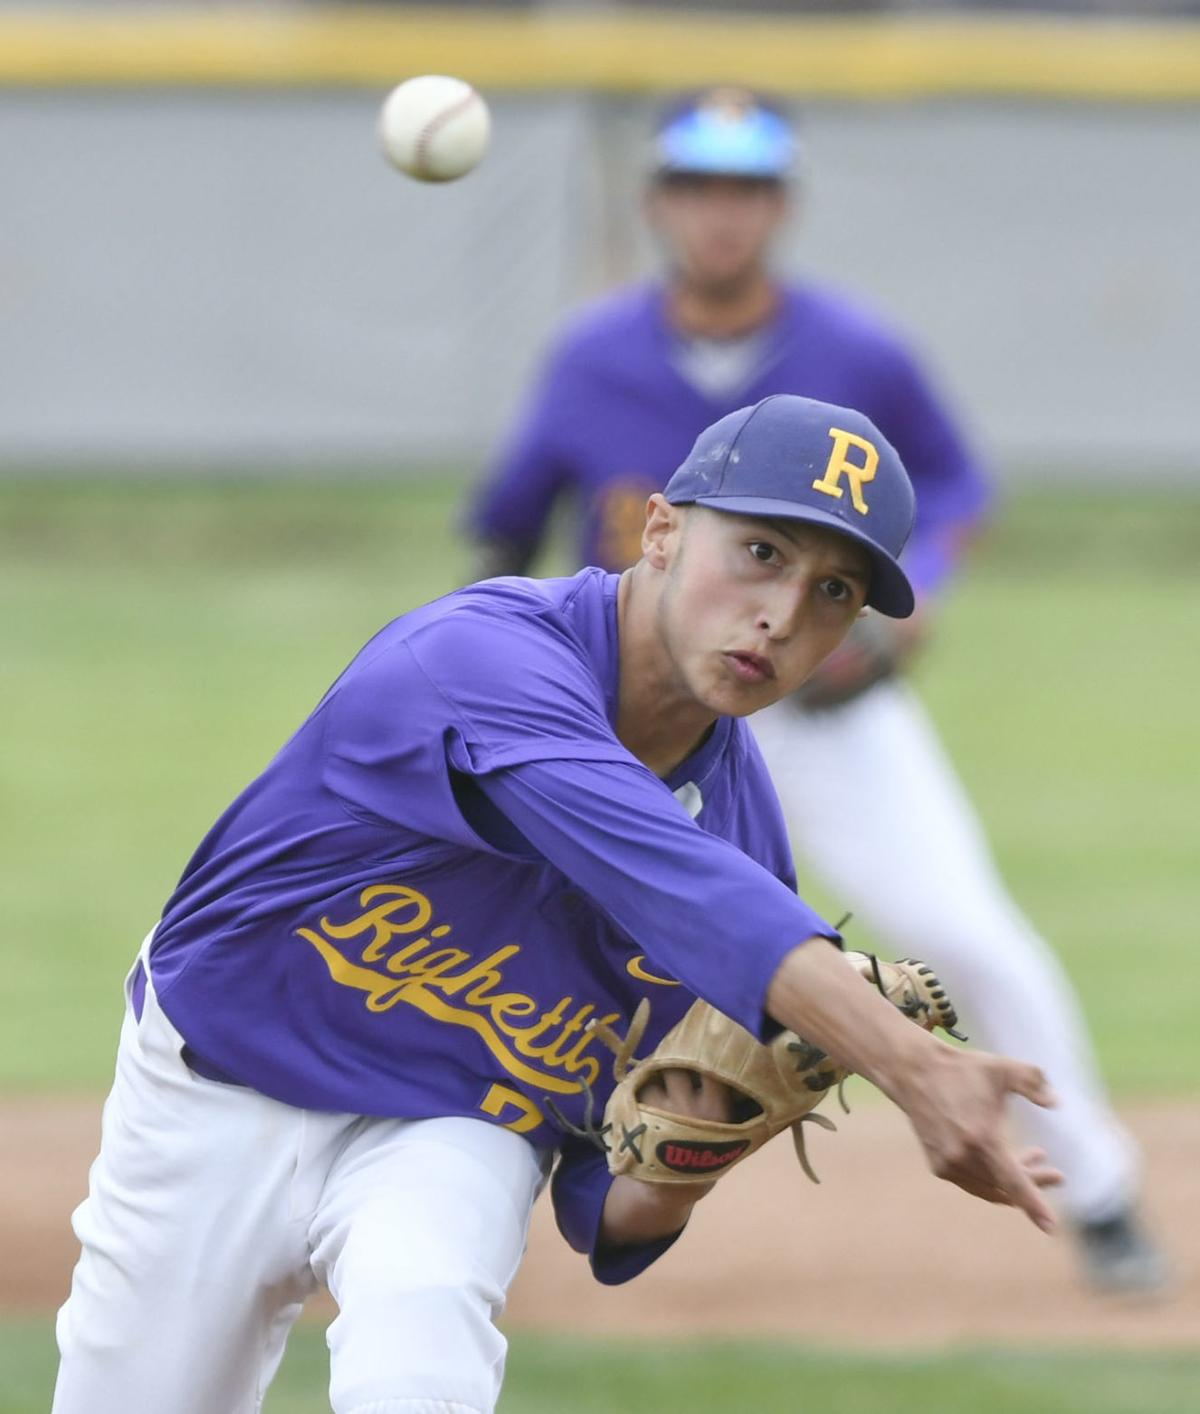 Caleb Dulay delivers against Bakersfield Centennial